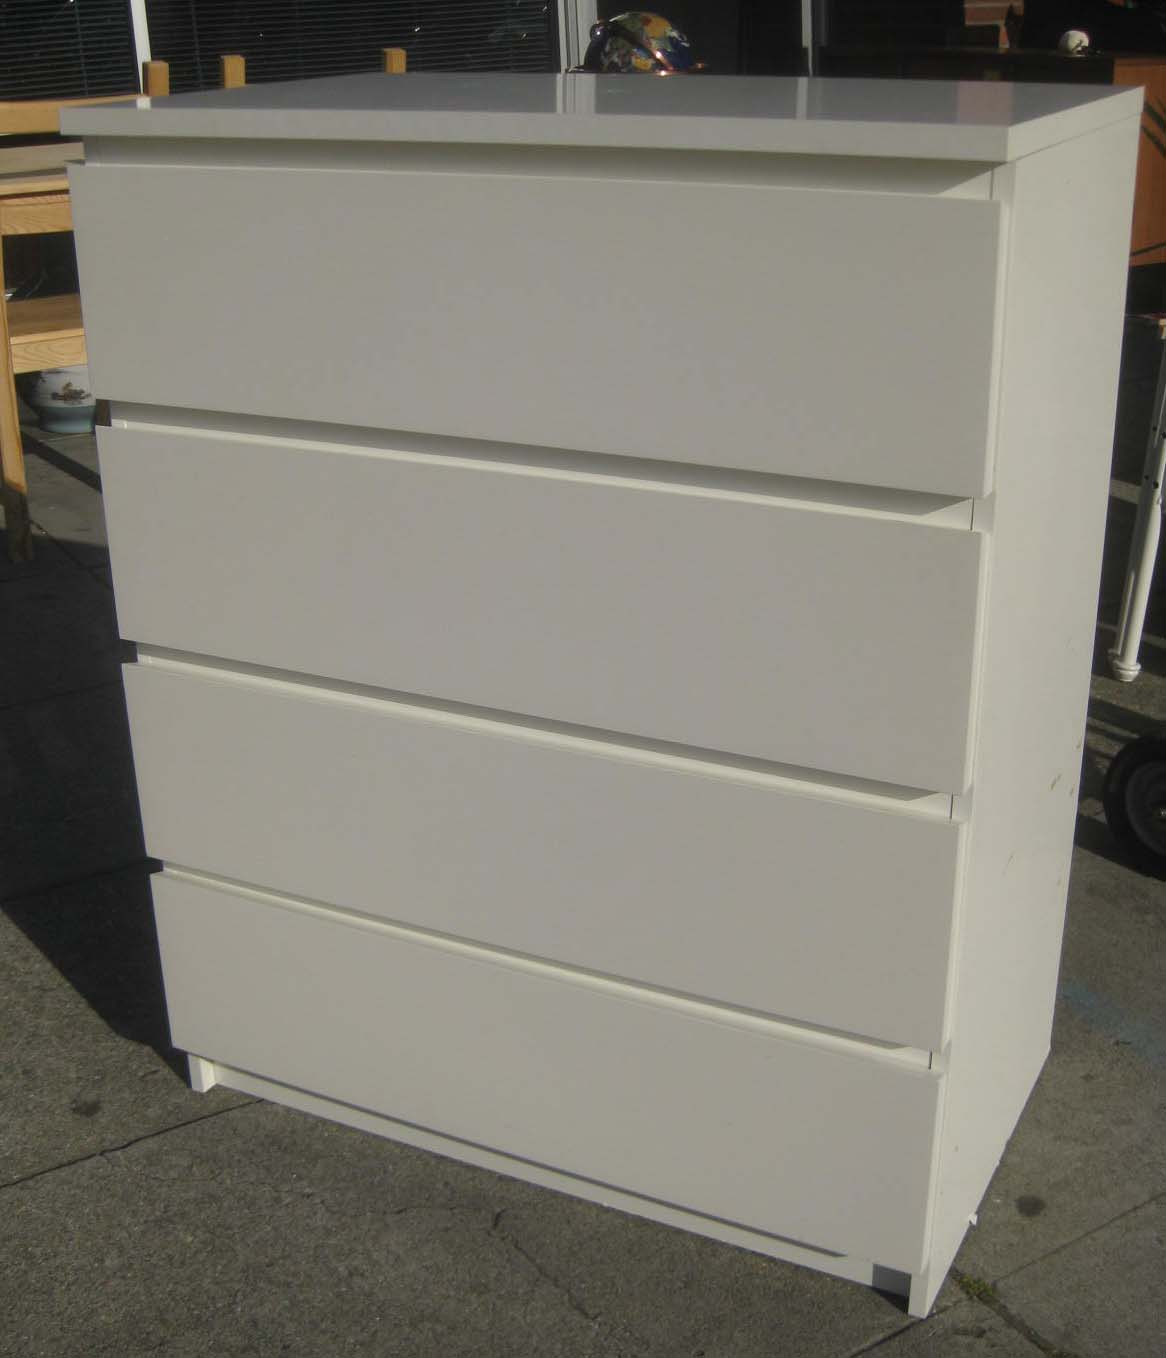 Ikea drawers gumtree glasgow - White bedroom furniture ikea ...